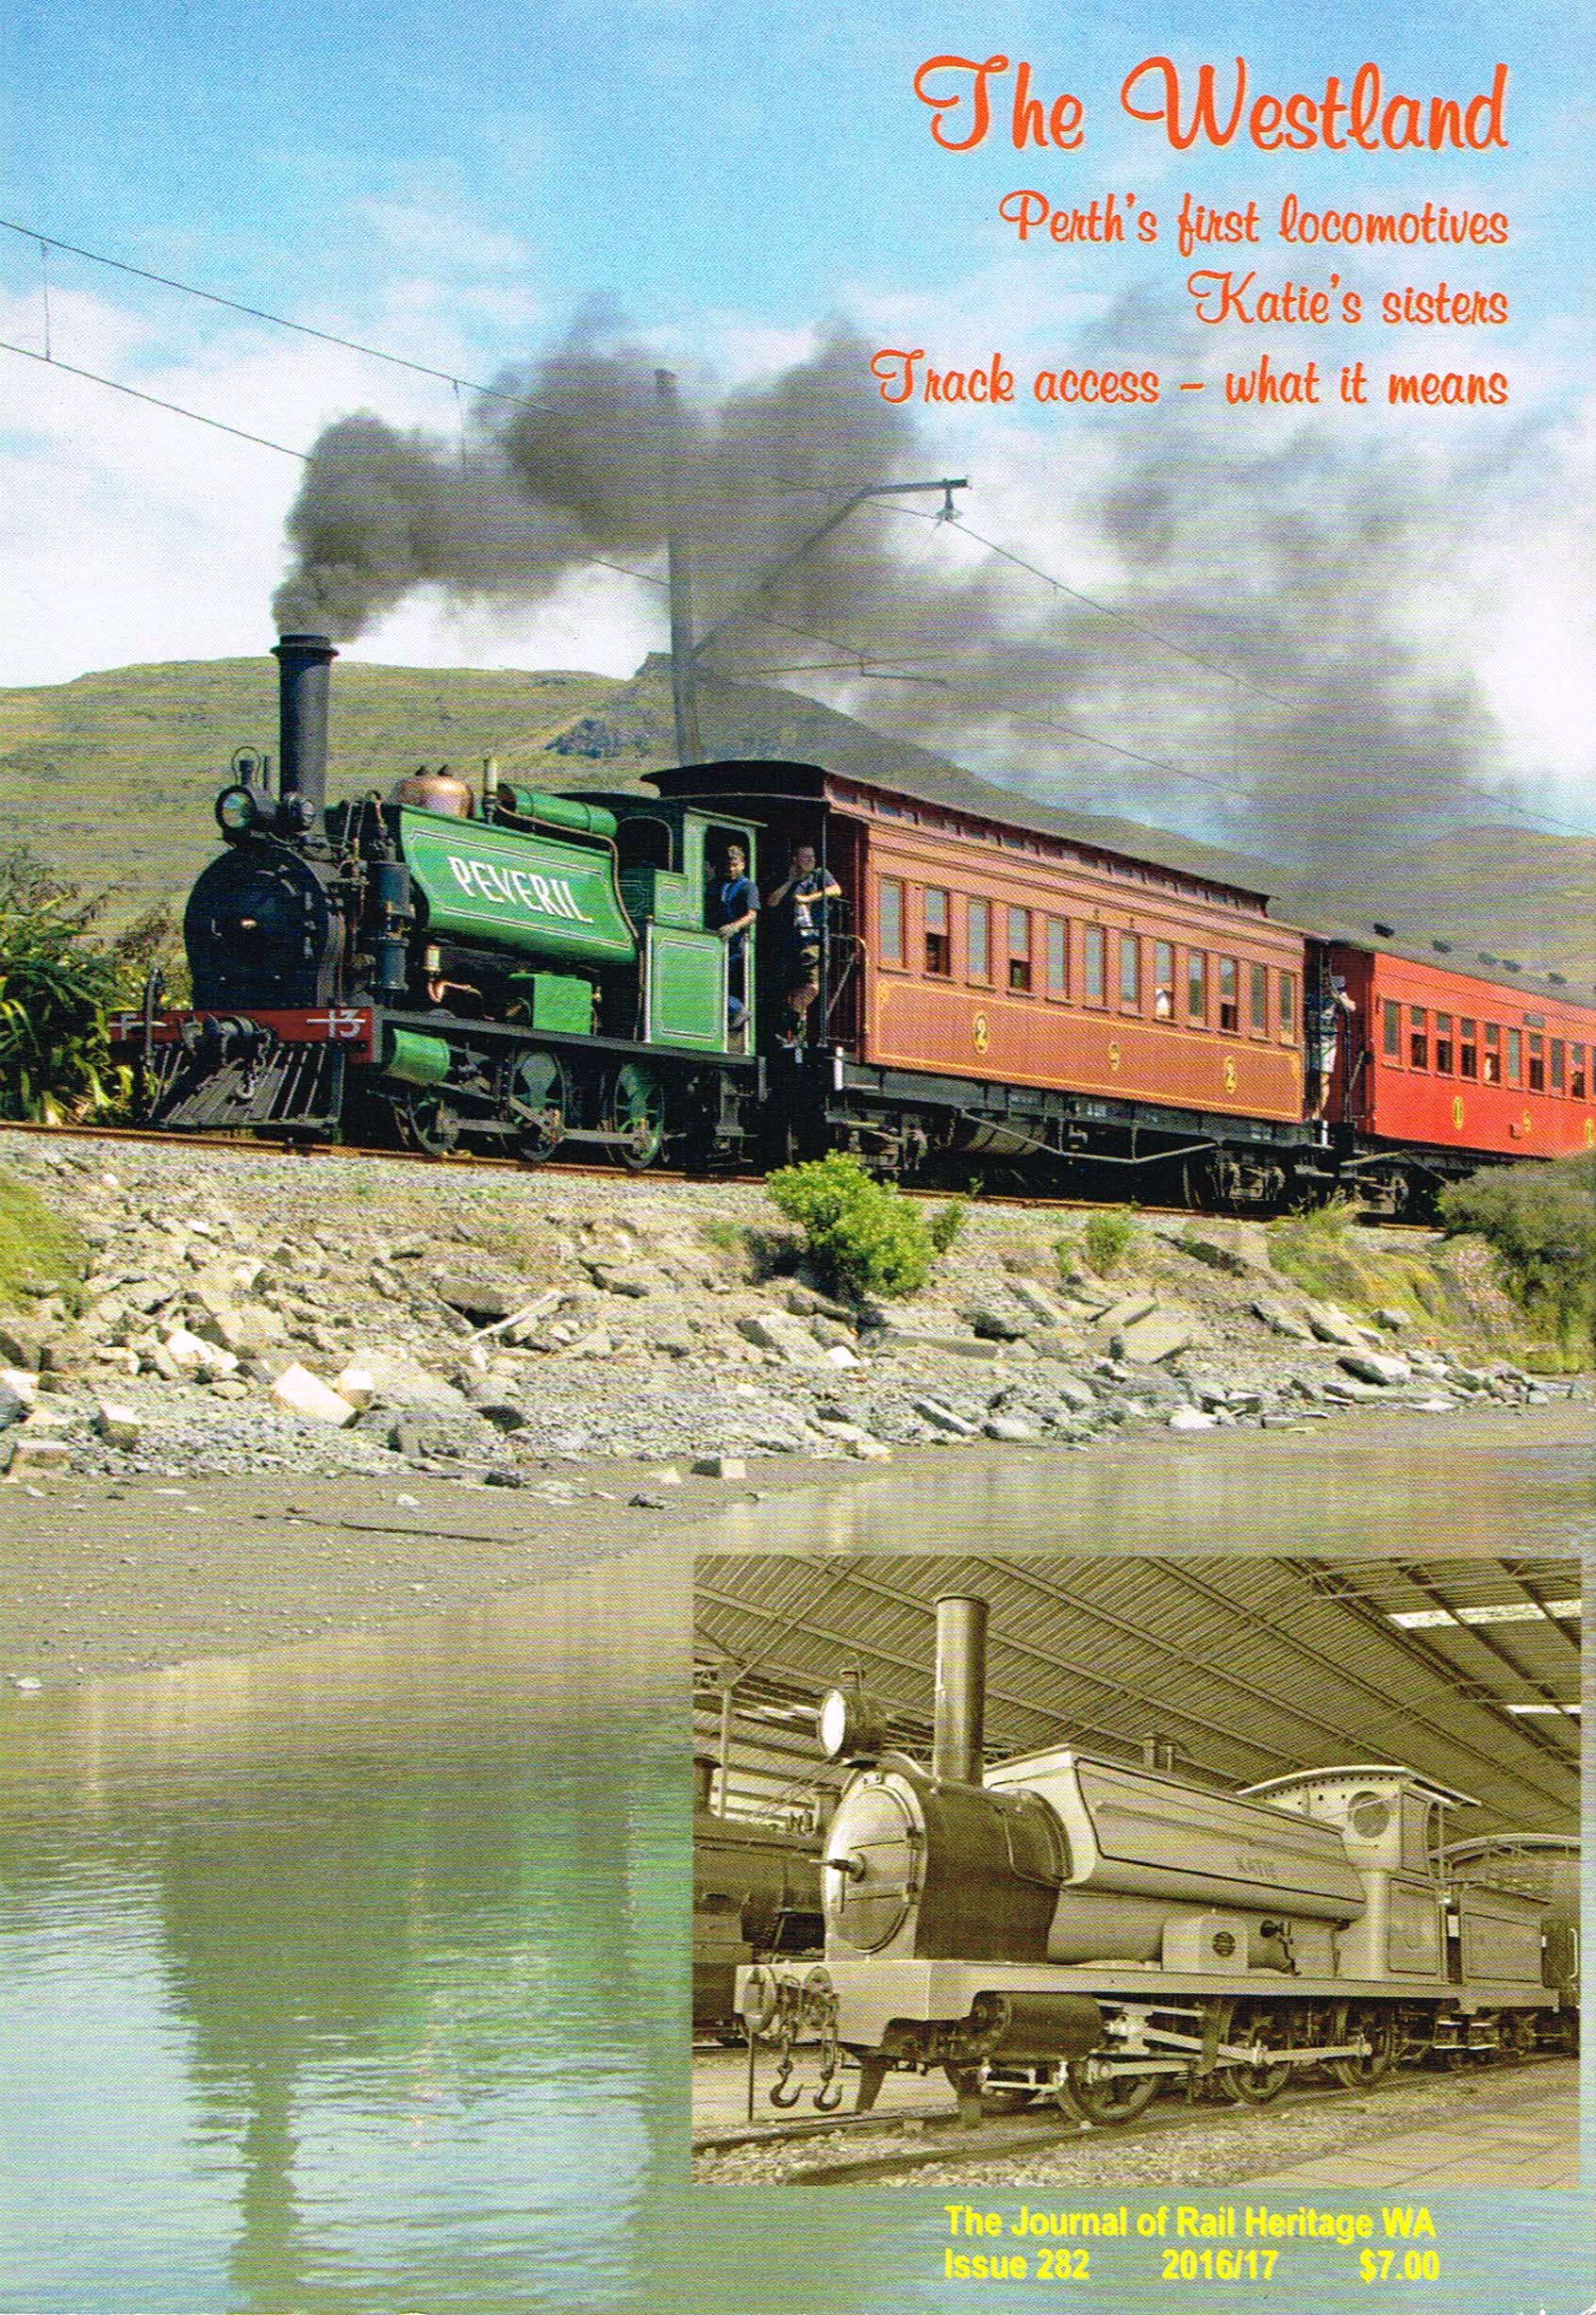 The Westland: Perth's first locomotives, Katie's sisters, track access - what it means.   Jeff Austin, Geoffrey Higham, Michael Gillooly and Simon Barber